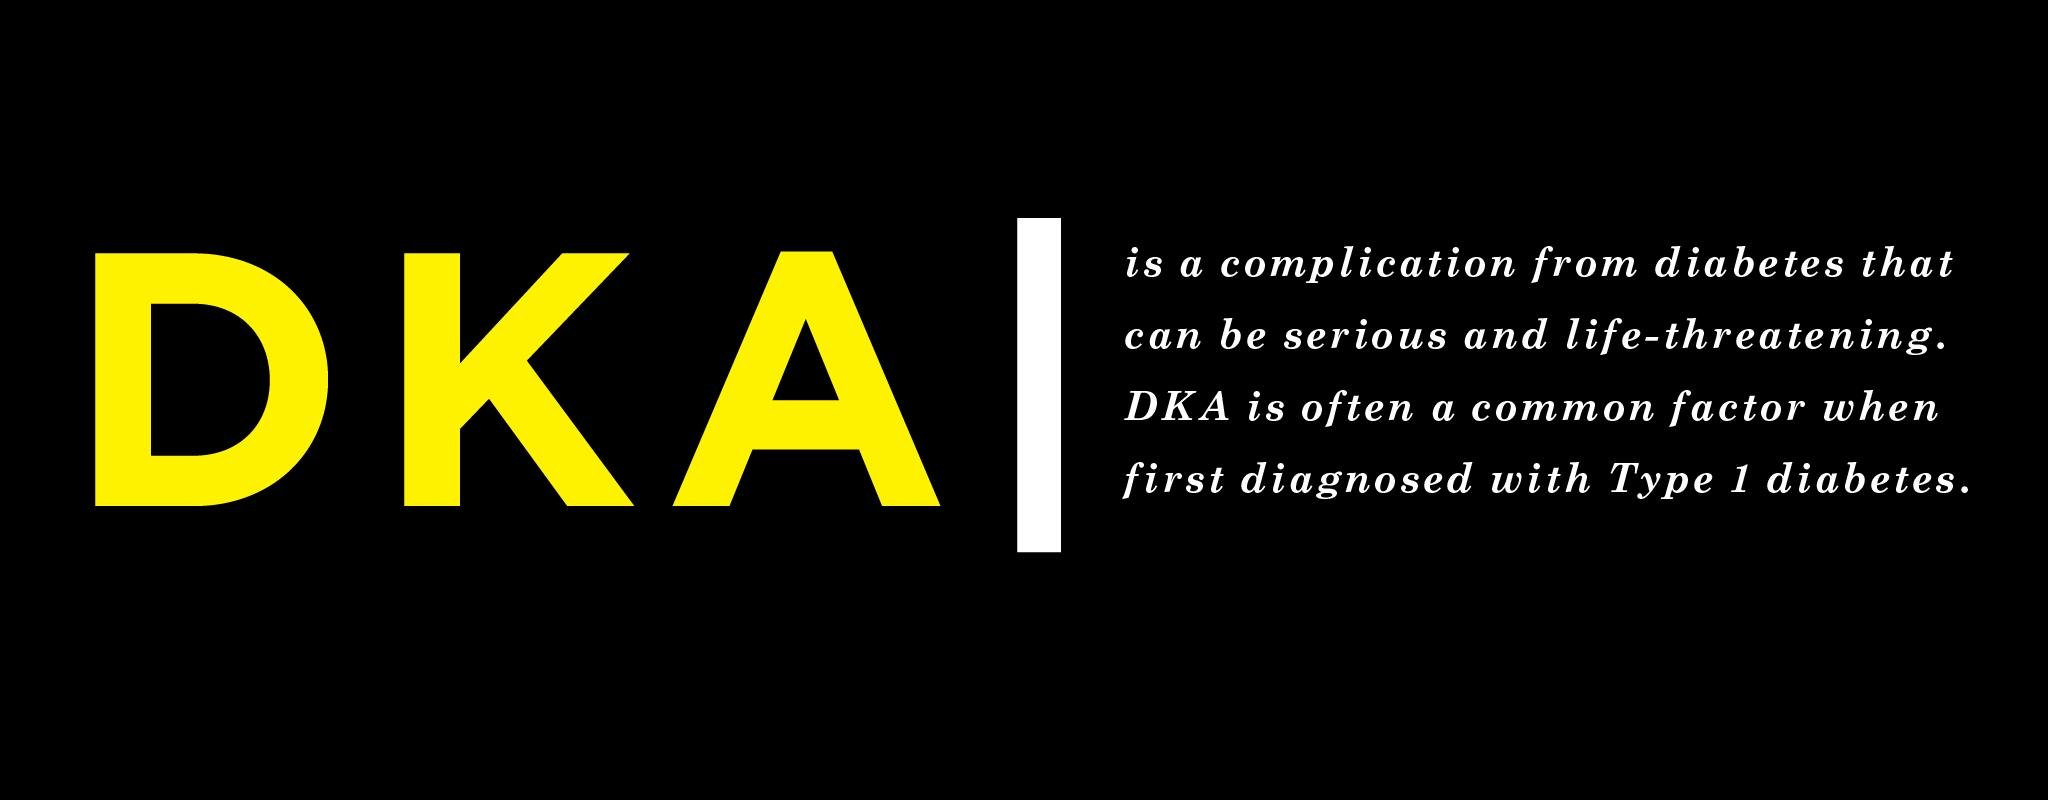 What Is Dka?